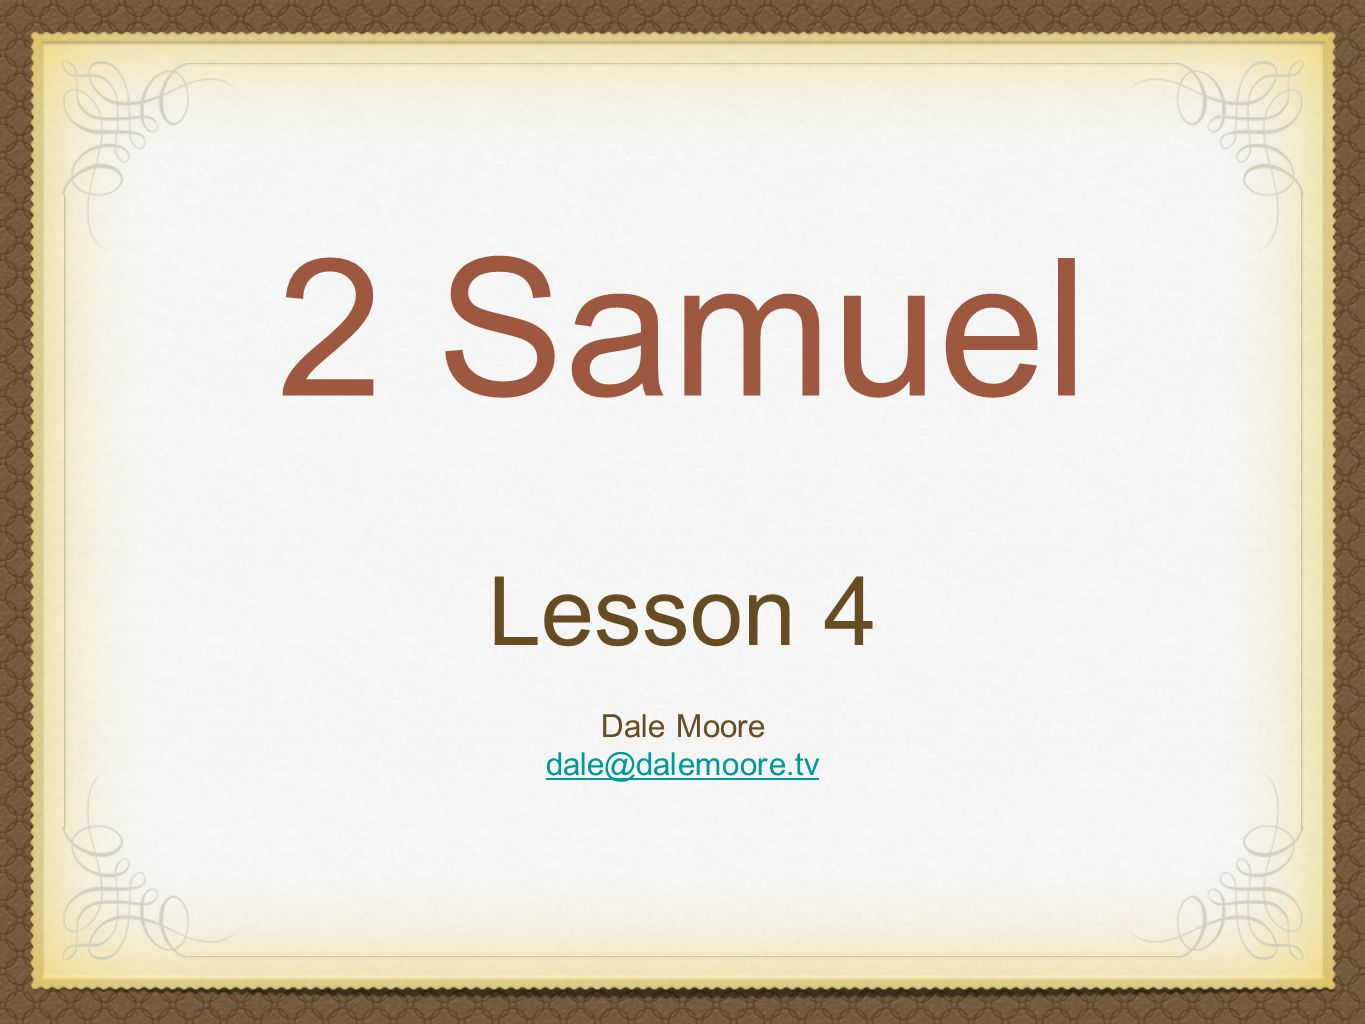 2 Samuel 13 Amnon, David's firstborn and heir to the throne